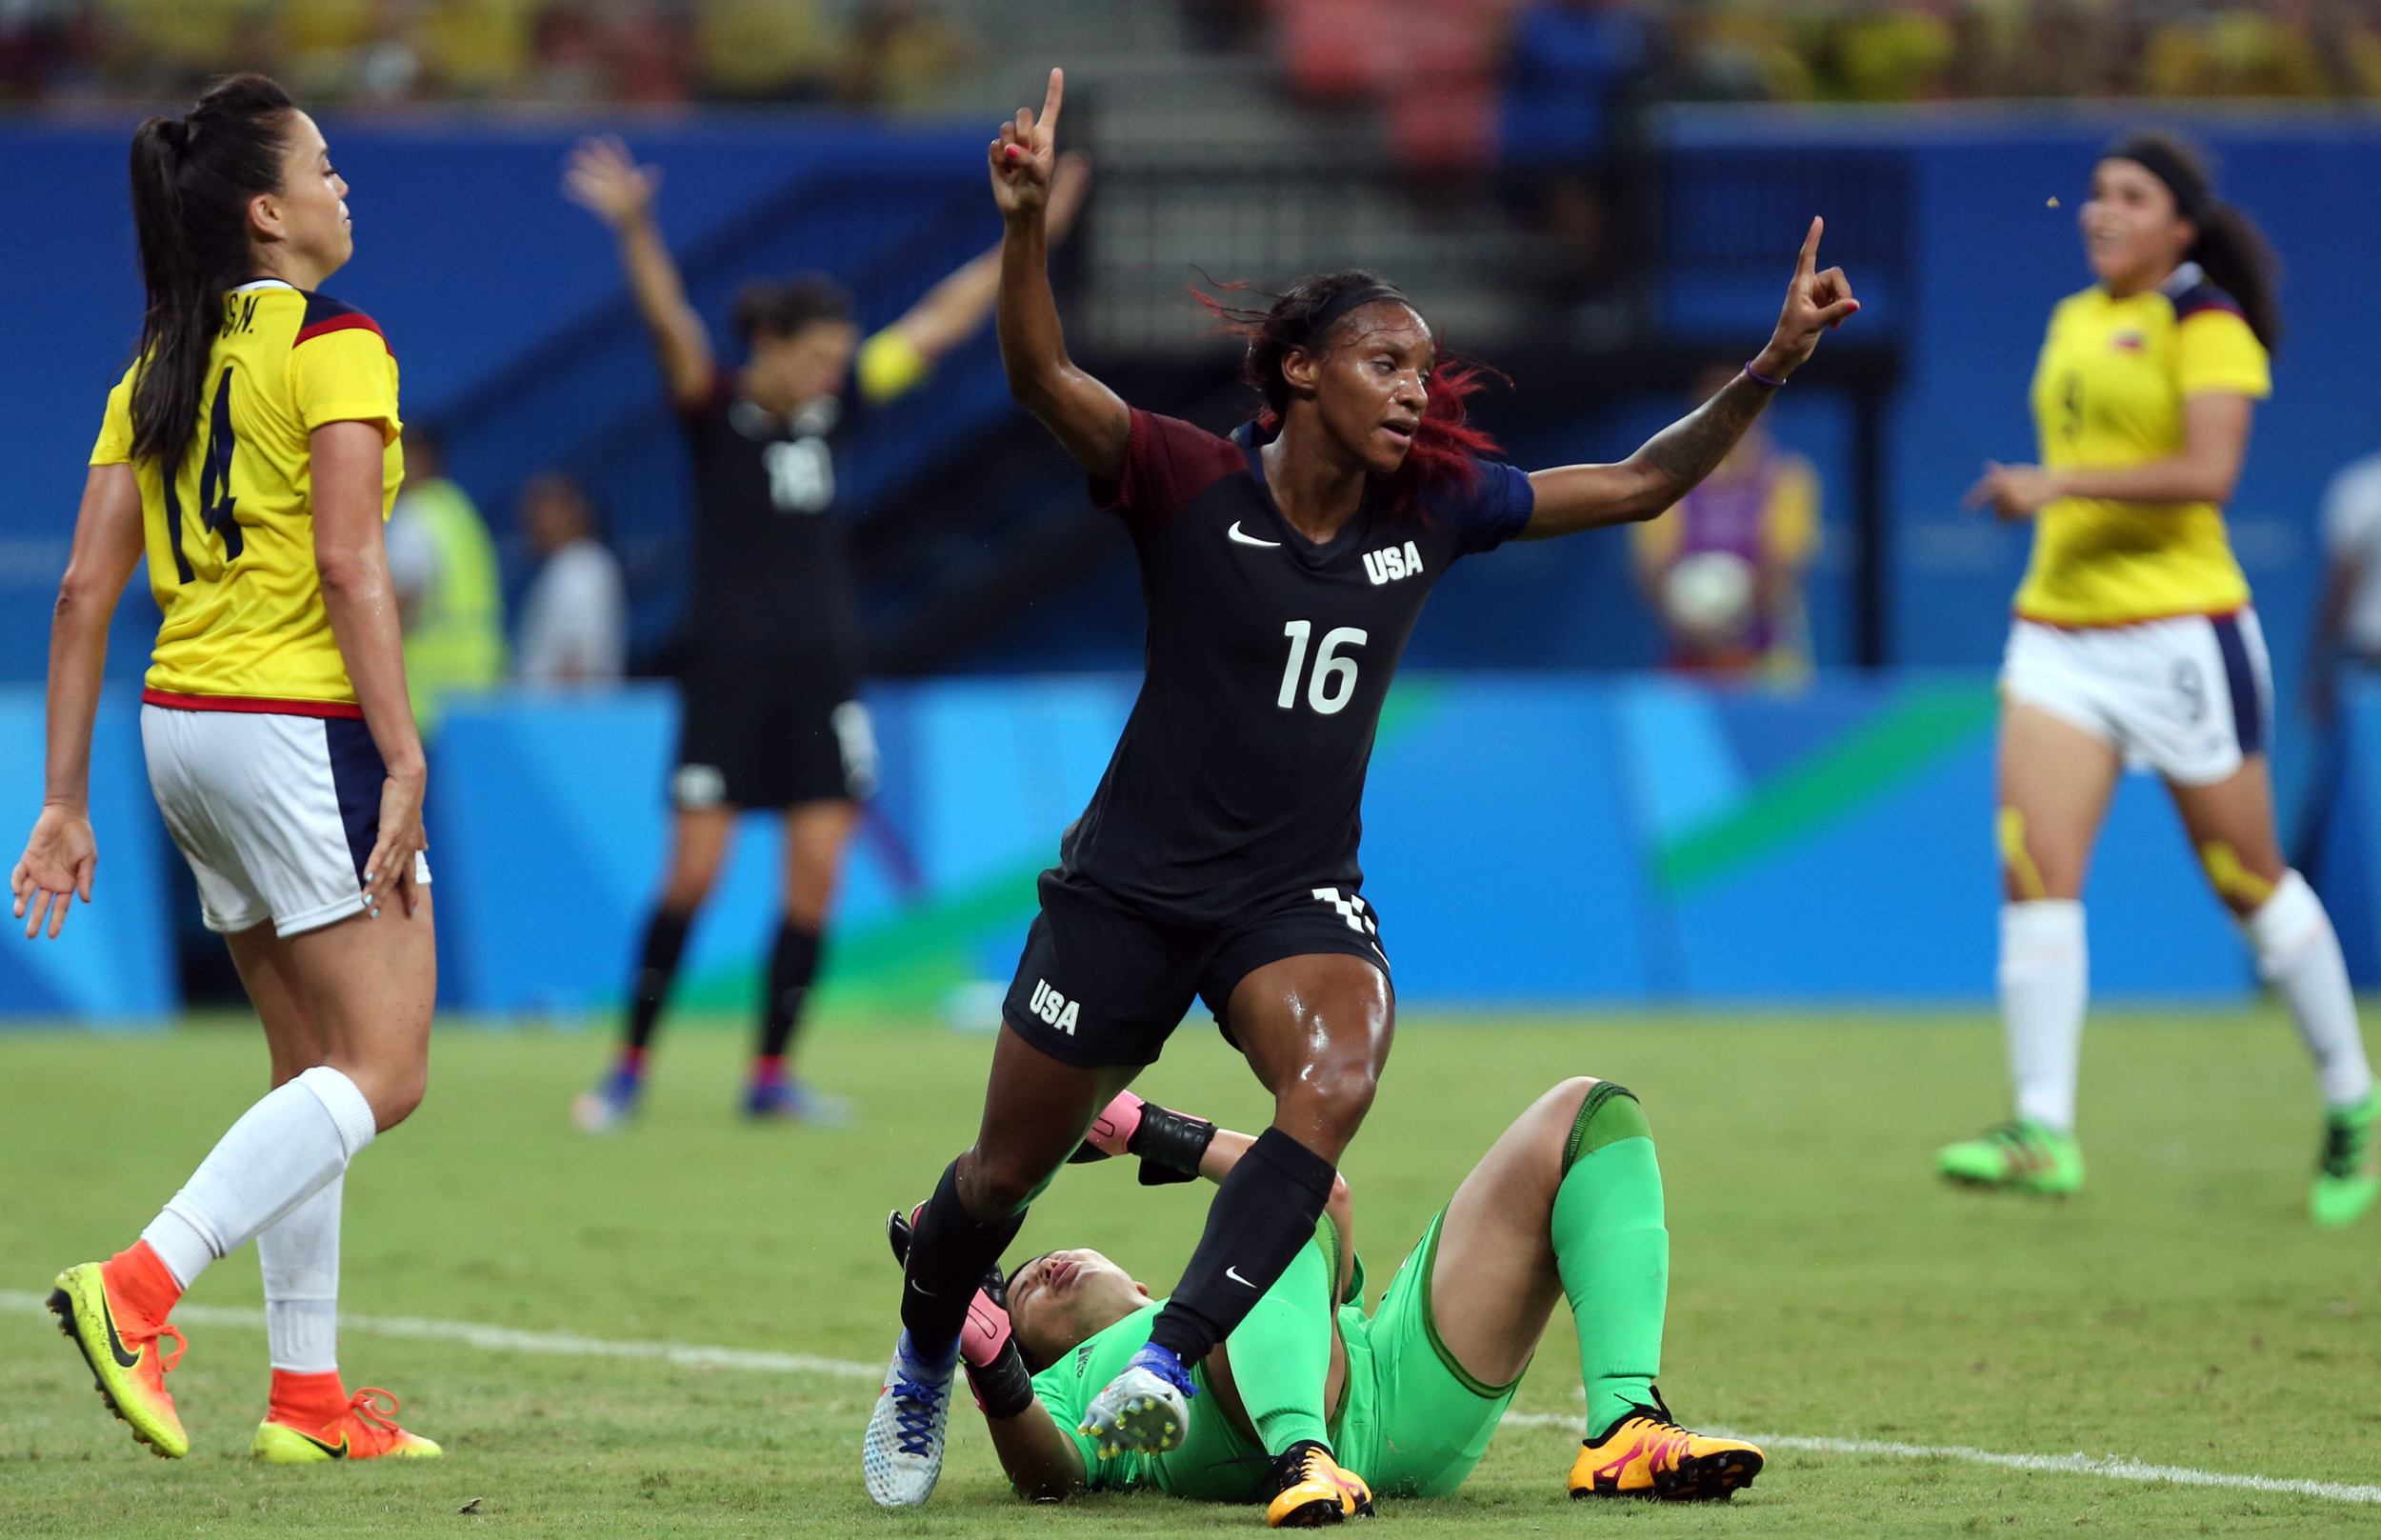 United States' Crystal Dunn, center, celebrates scoring her side's first goal during a group G match of the women's Olympic football tournament between Colombia and United States at the Arena Amazonia stadium in Manaus, Brazil, Tuesday, Aug. 9, 2016.